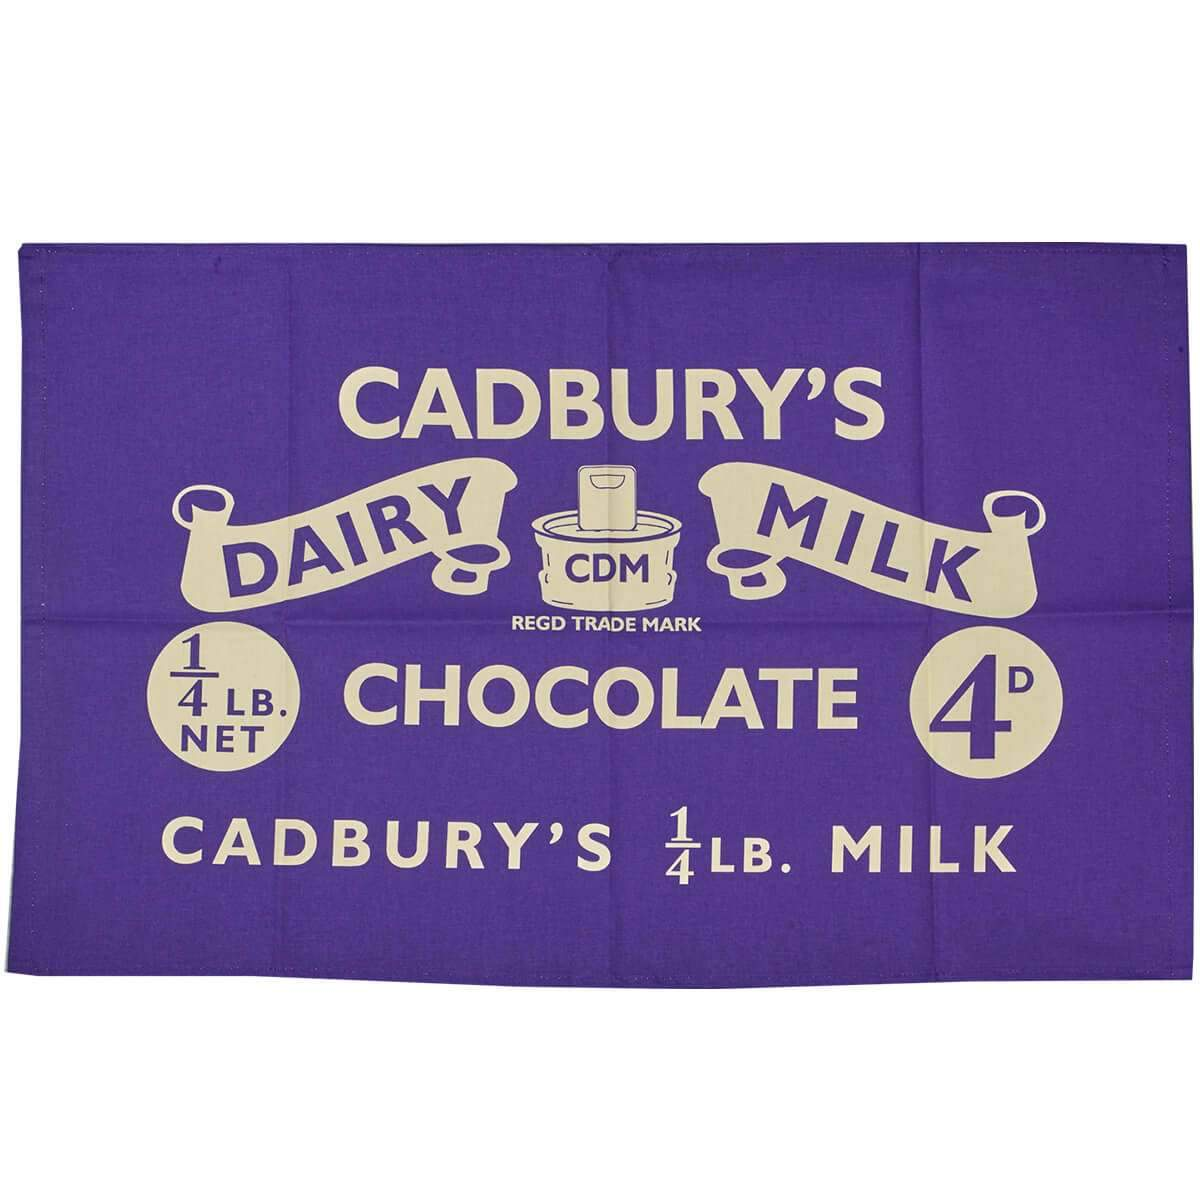 Cadbury Heritage Cotton Tea Towel